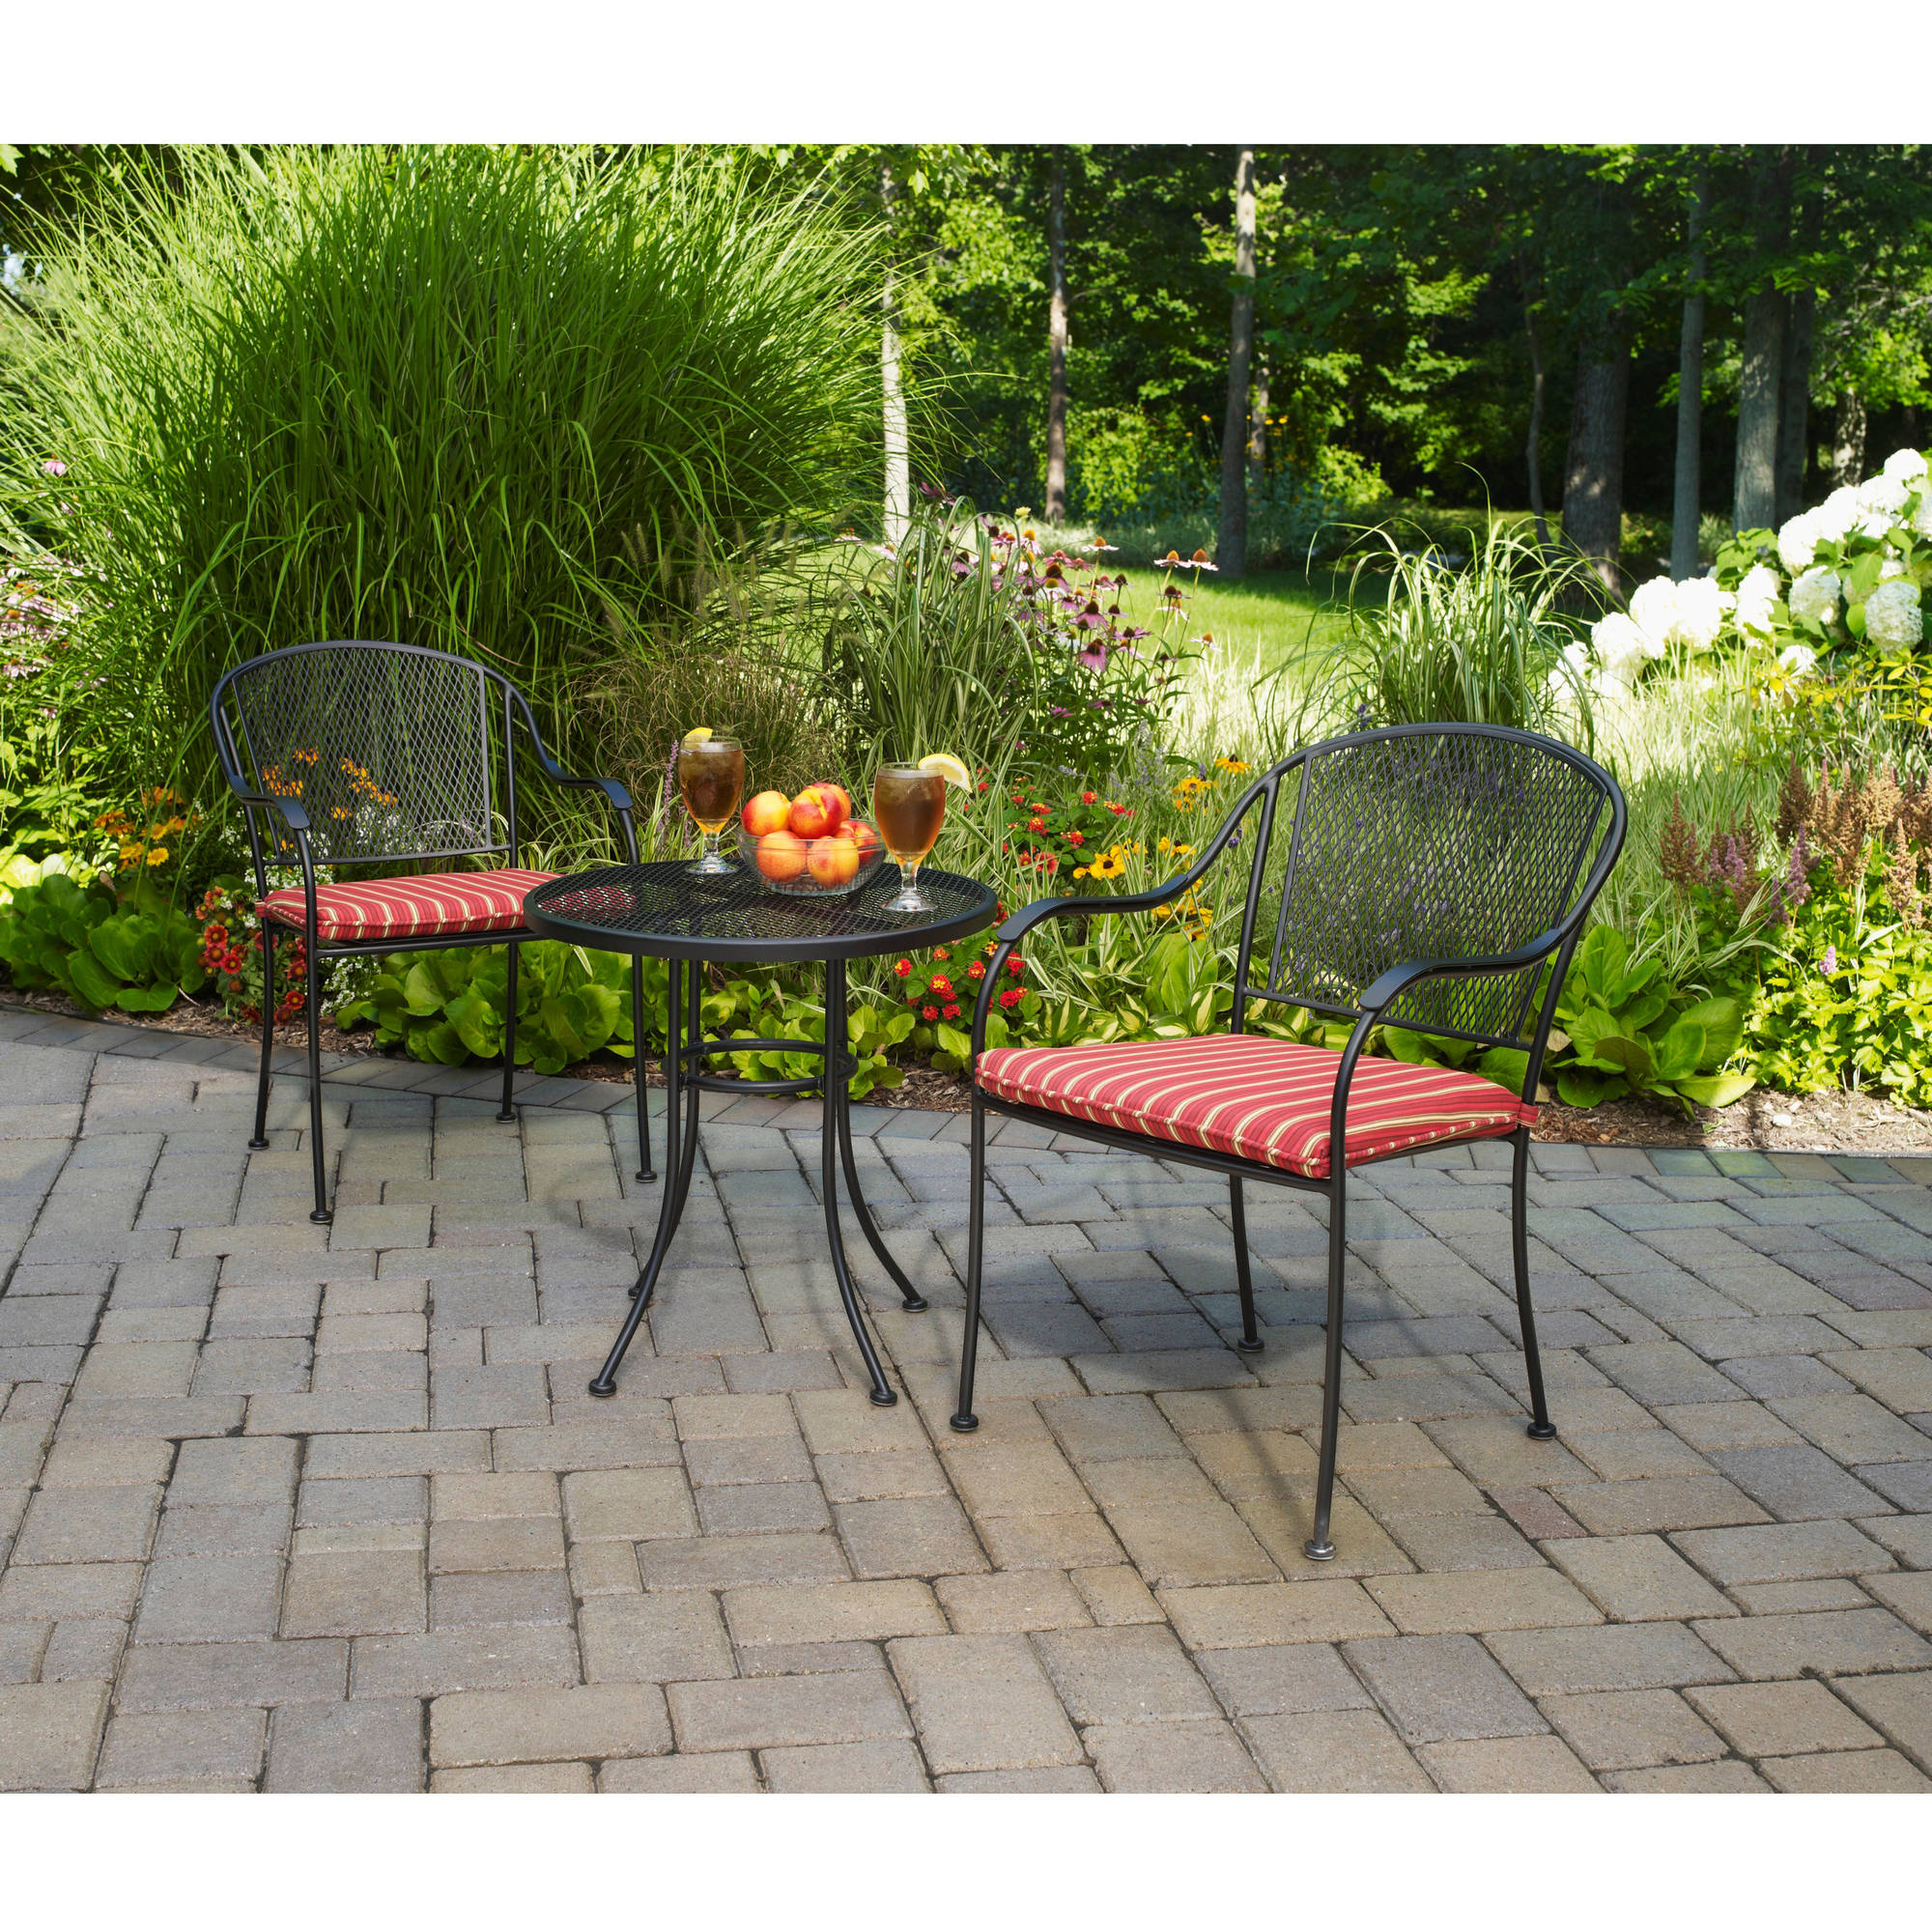 Mainstays Wrought Iron 3-Piece Outdoor Bistro Set, Seats 2